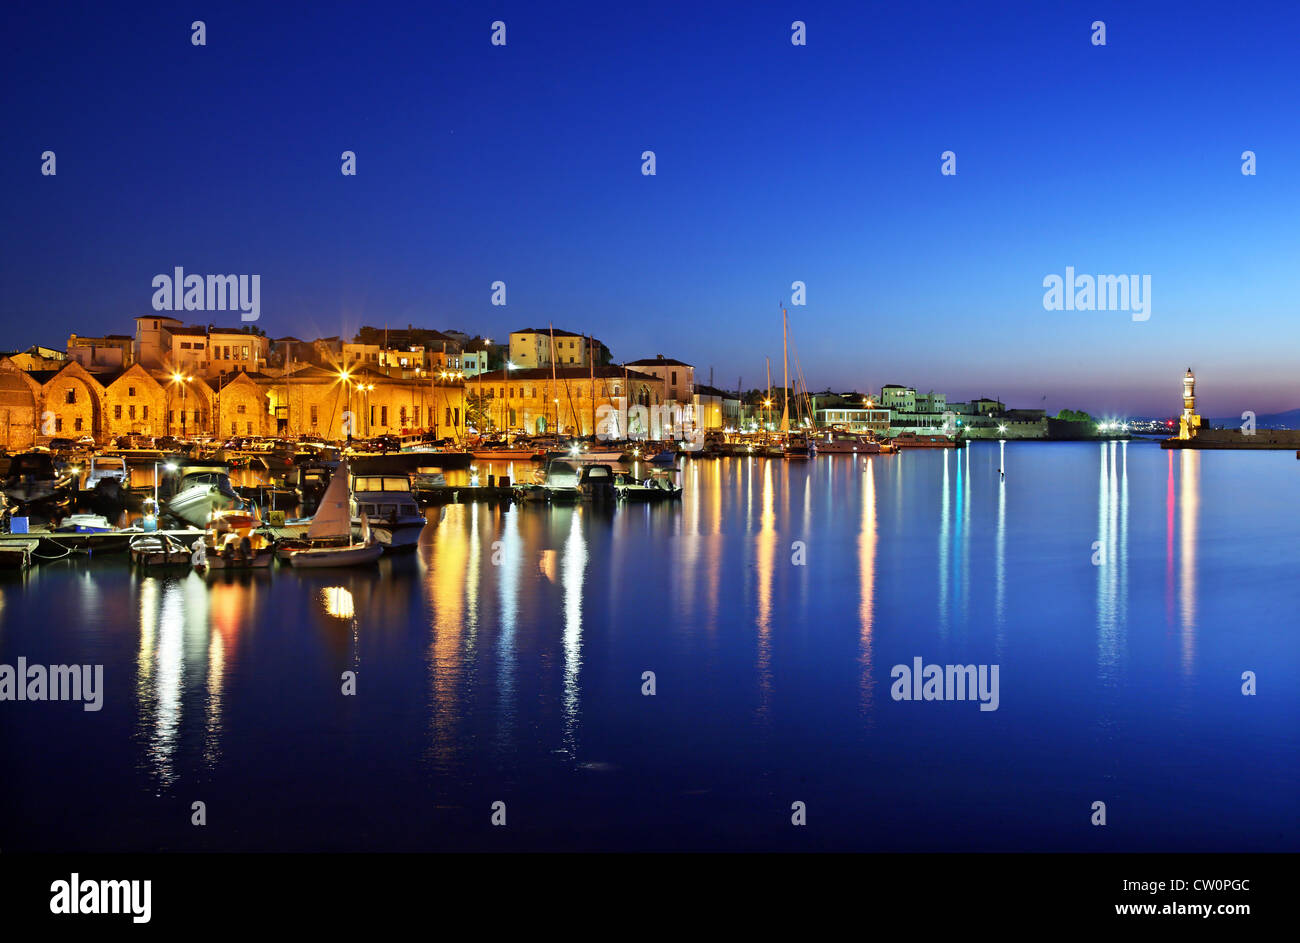 Night view of the old harbor of Chania town, Crete, Greece. - Stock Image